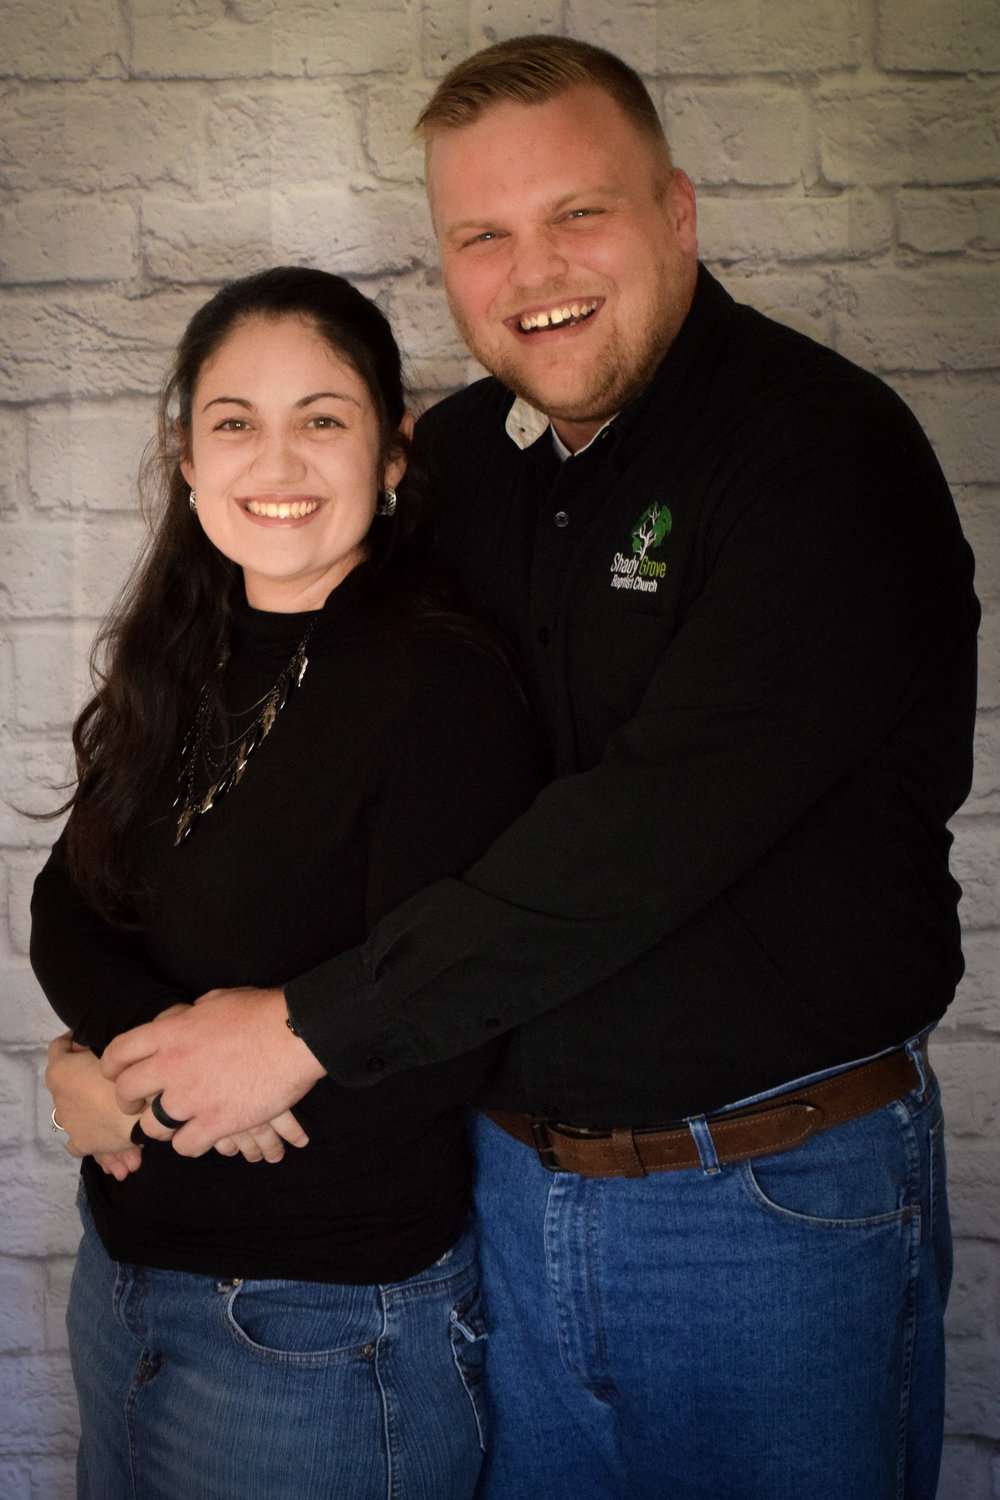 Our Pastor    Nick Sorrell and his wife Mrs. Sarah